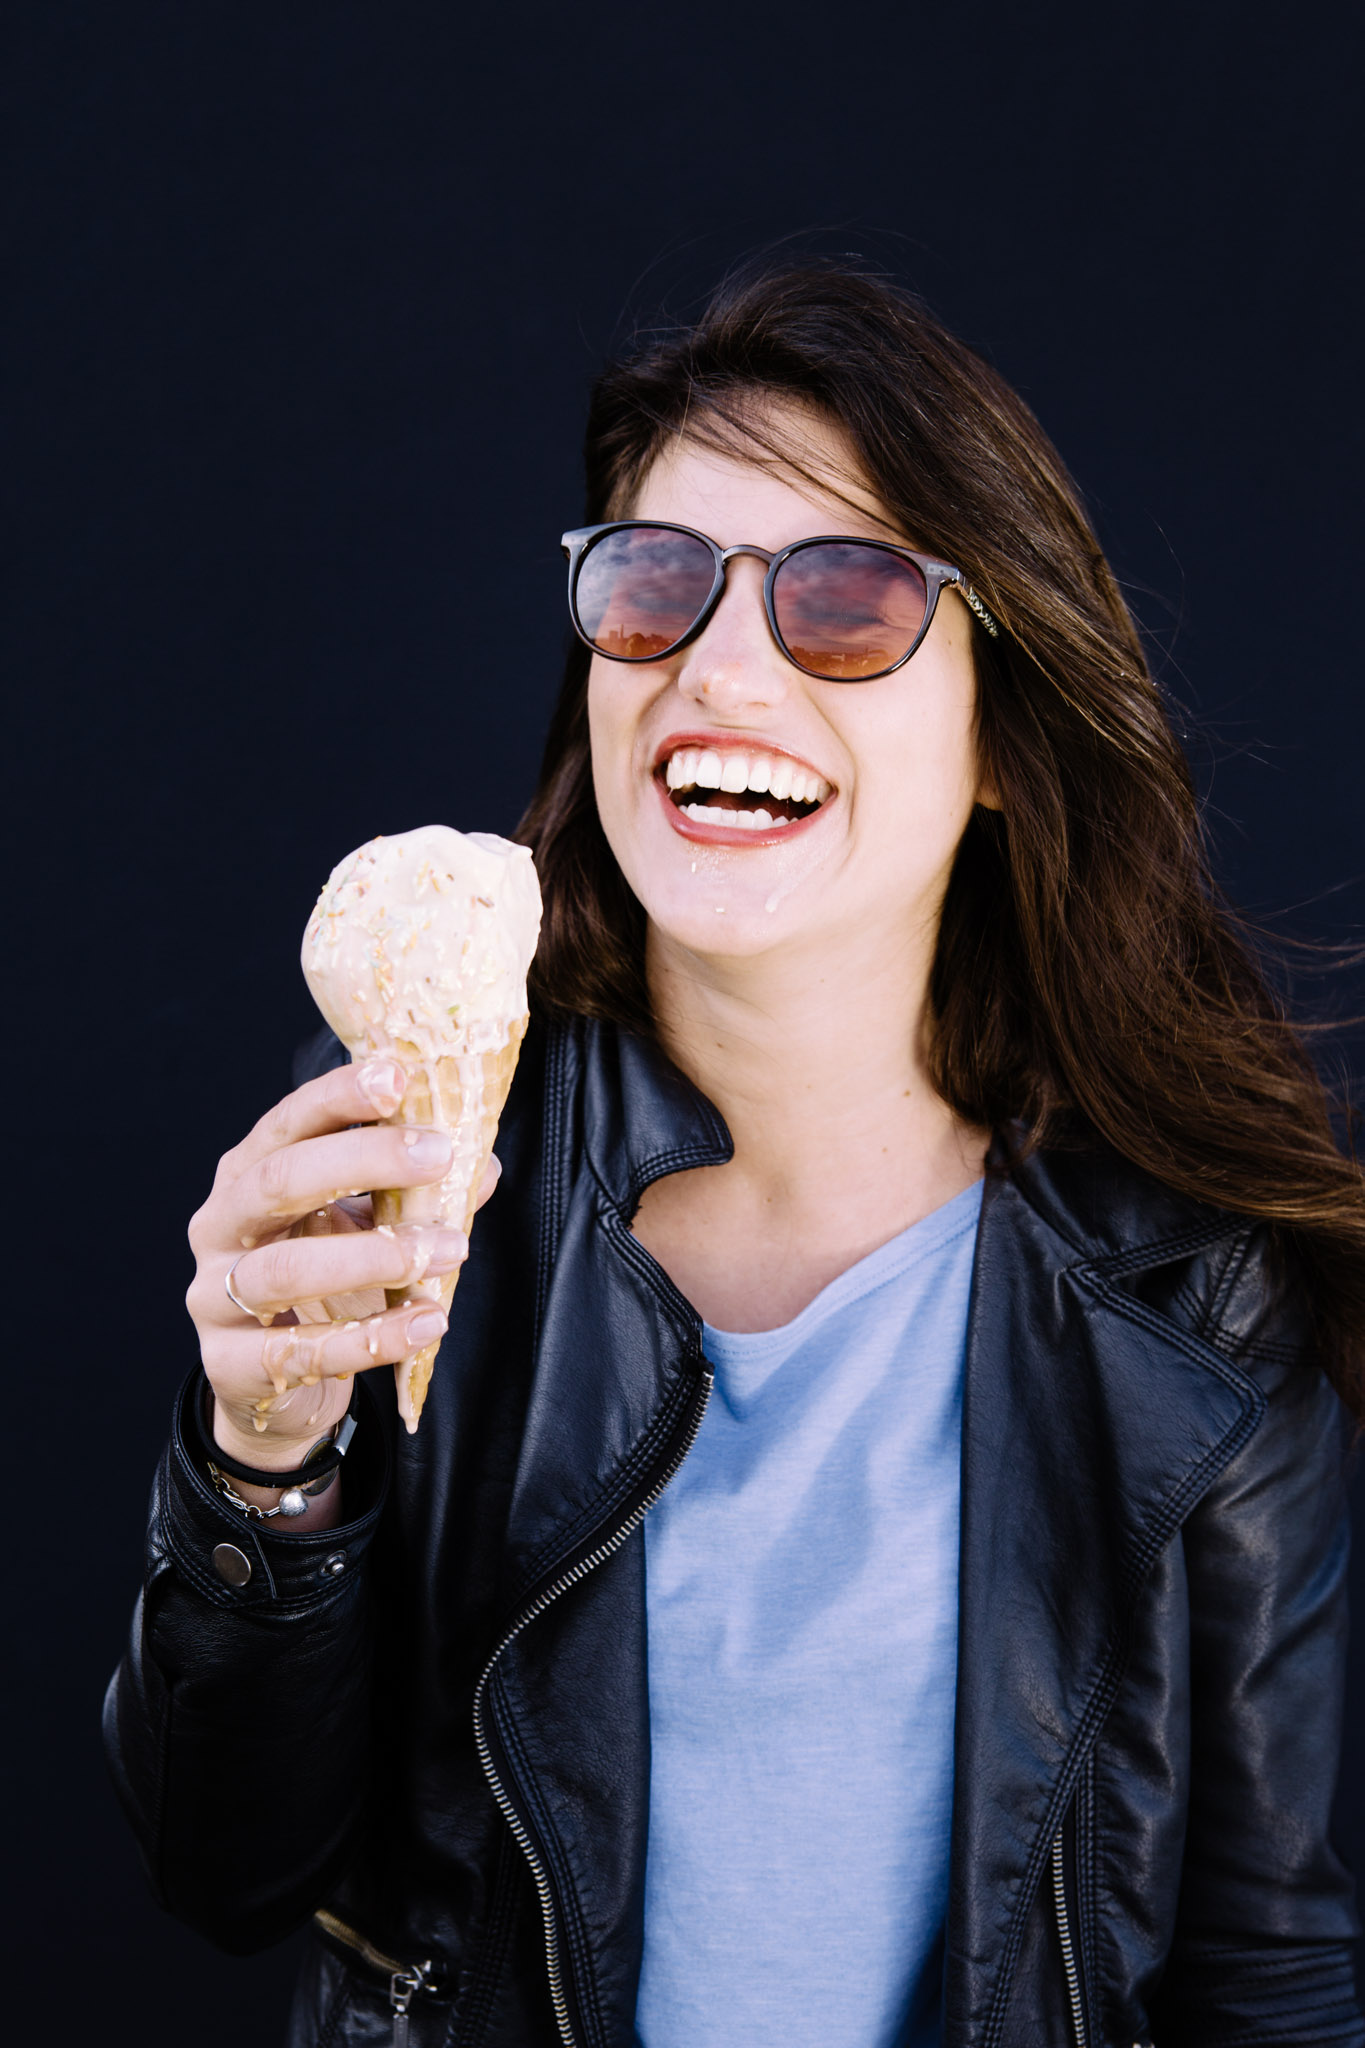 ©TomWoollard_editorial-lifestyle-young-beautiful-woman-sunglasses-eating-dripping-ice-cream-cone-laughing.jpg